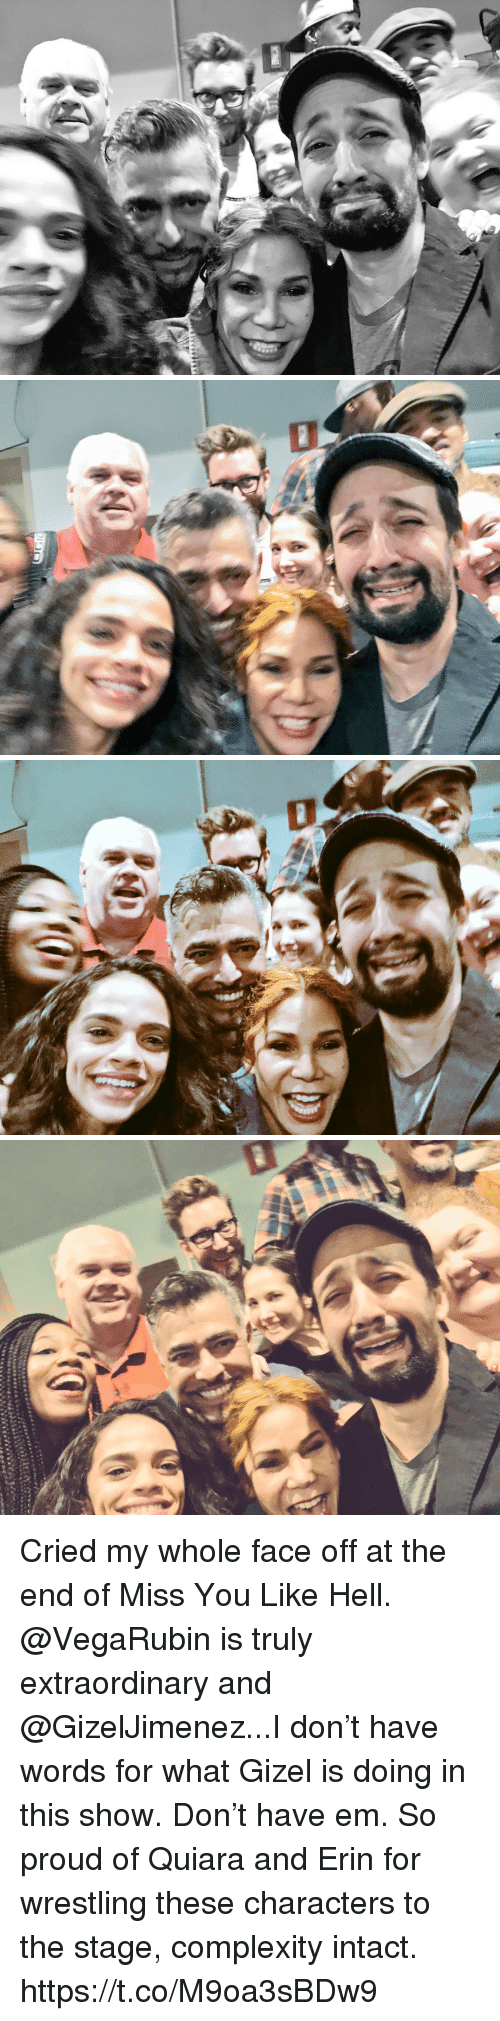 Memes, Wrestling, and Proud: Cried my whole face off at the end of Miss You Like Hell. @VegaRubin is truly extraordinary and @GizelJimenez...I don't have words for what Gizel is doing in this show. Don't have em.  So proud of Quiara and Erin for wrestling these characters to the stage, complexity intact. https://t.co/M9oa3sBDw9